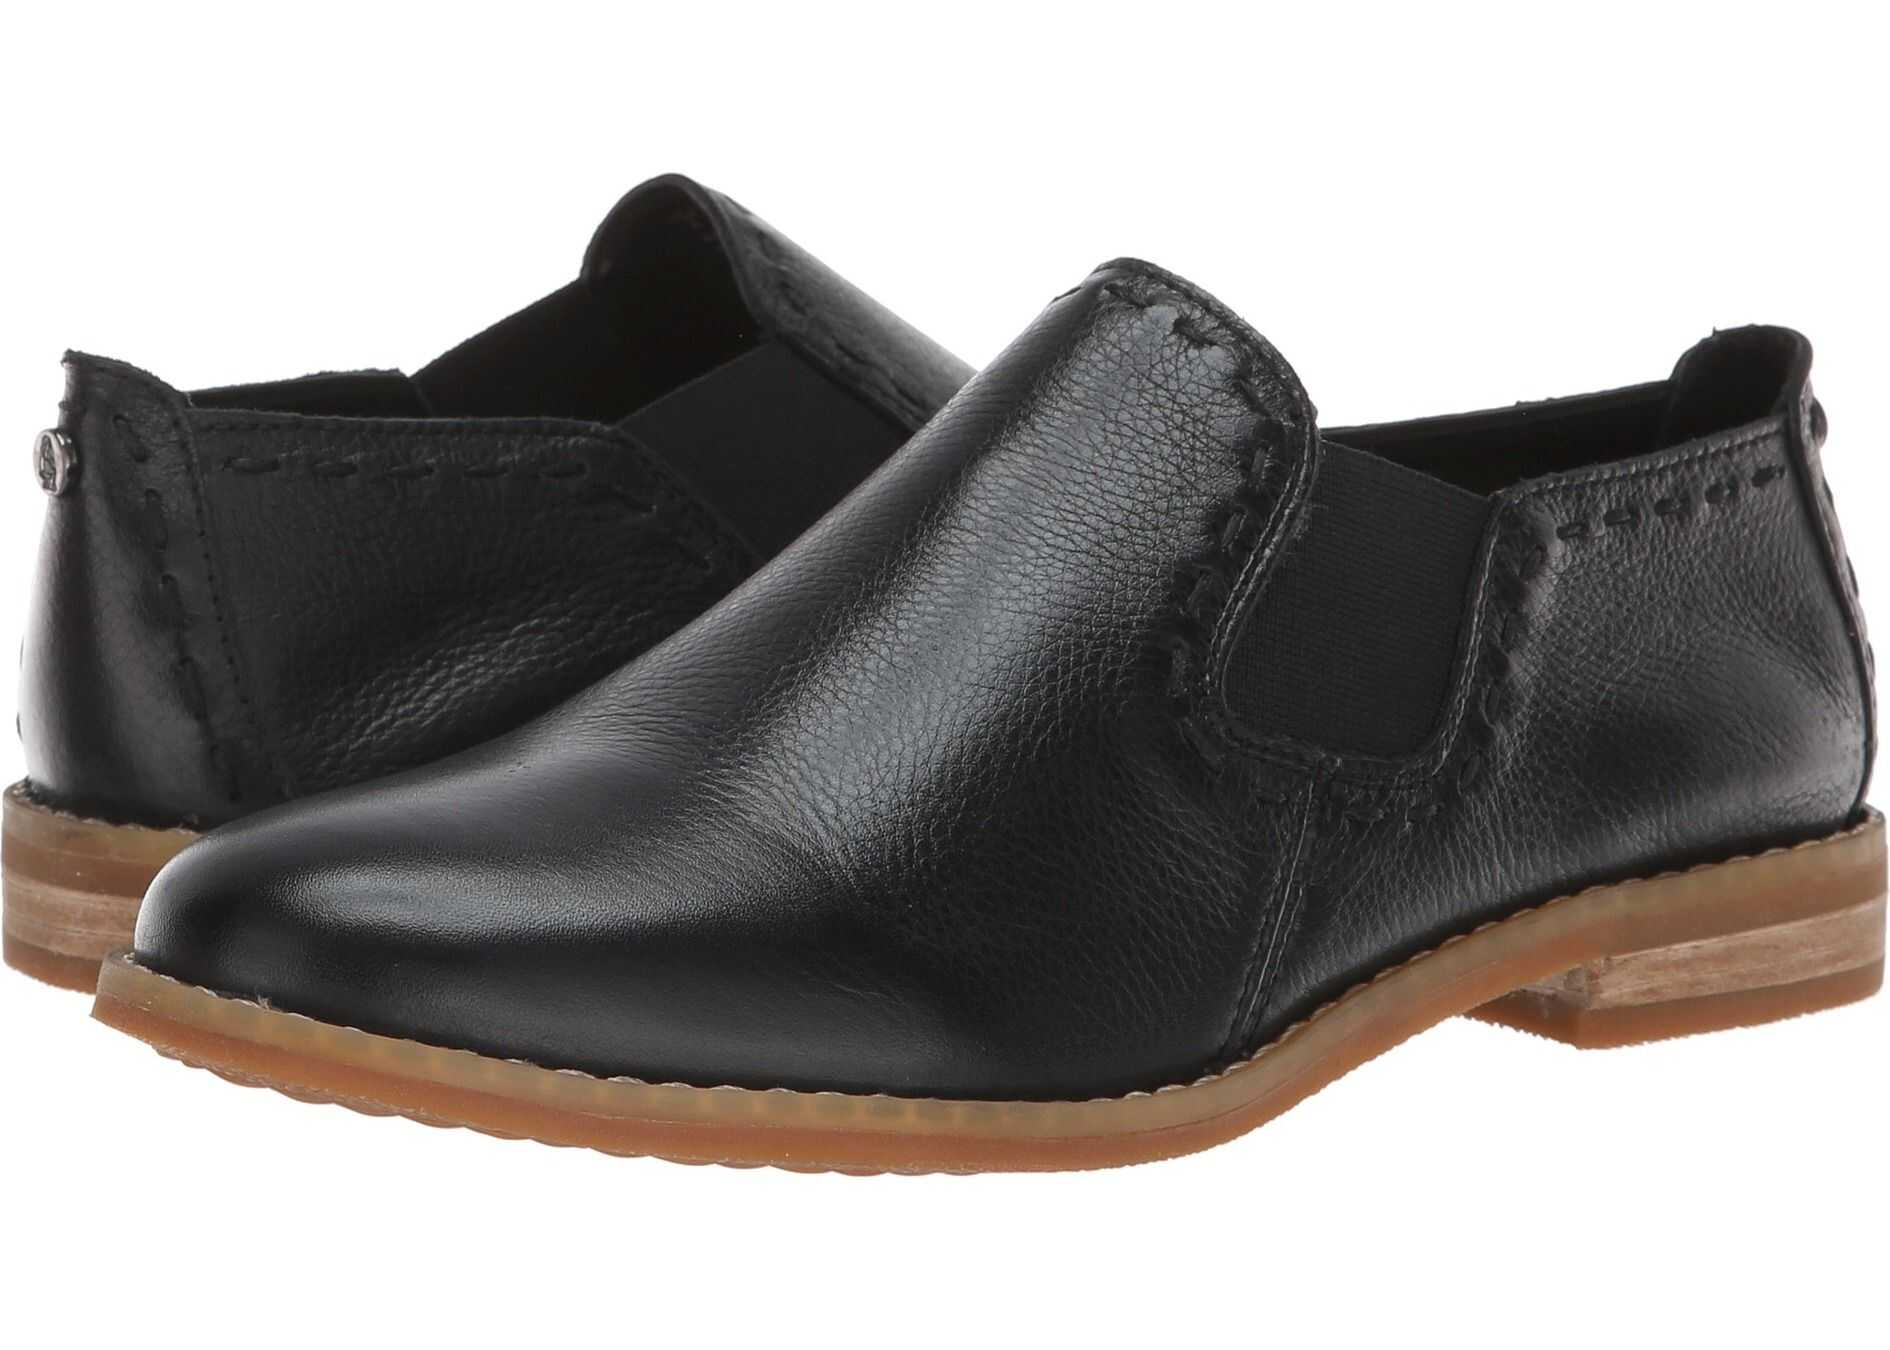 Hush Puppies Chardon Slip-On Black Leather